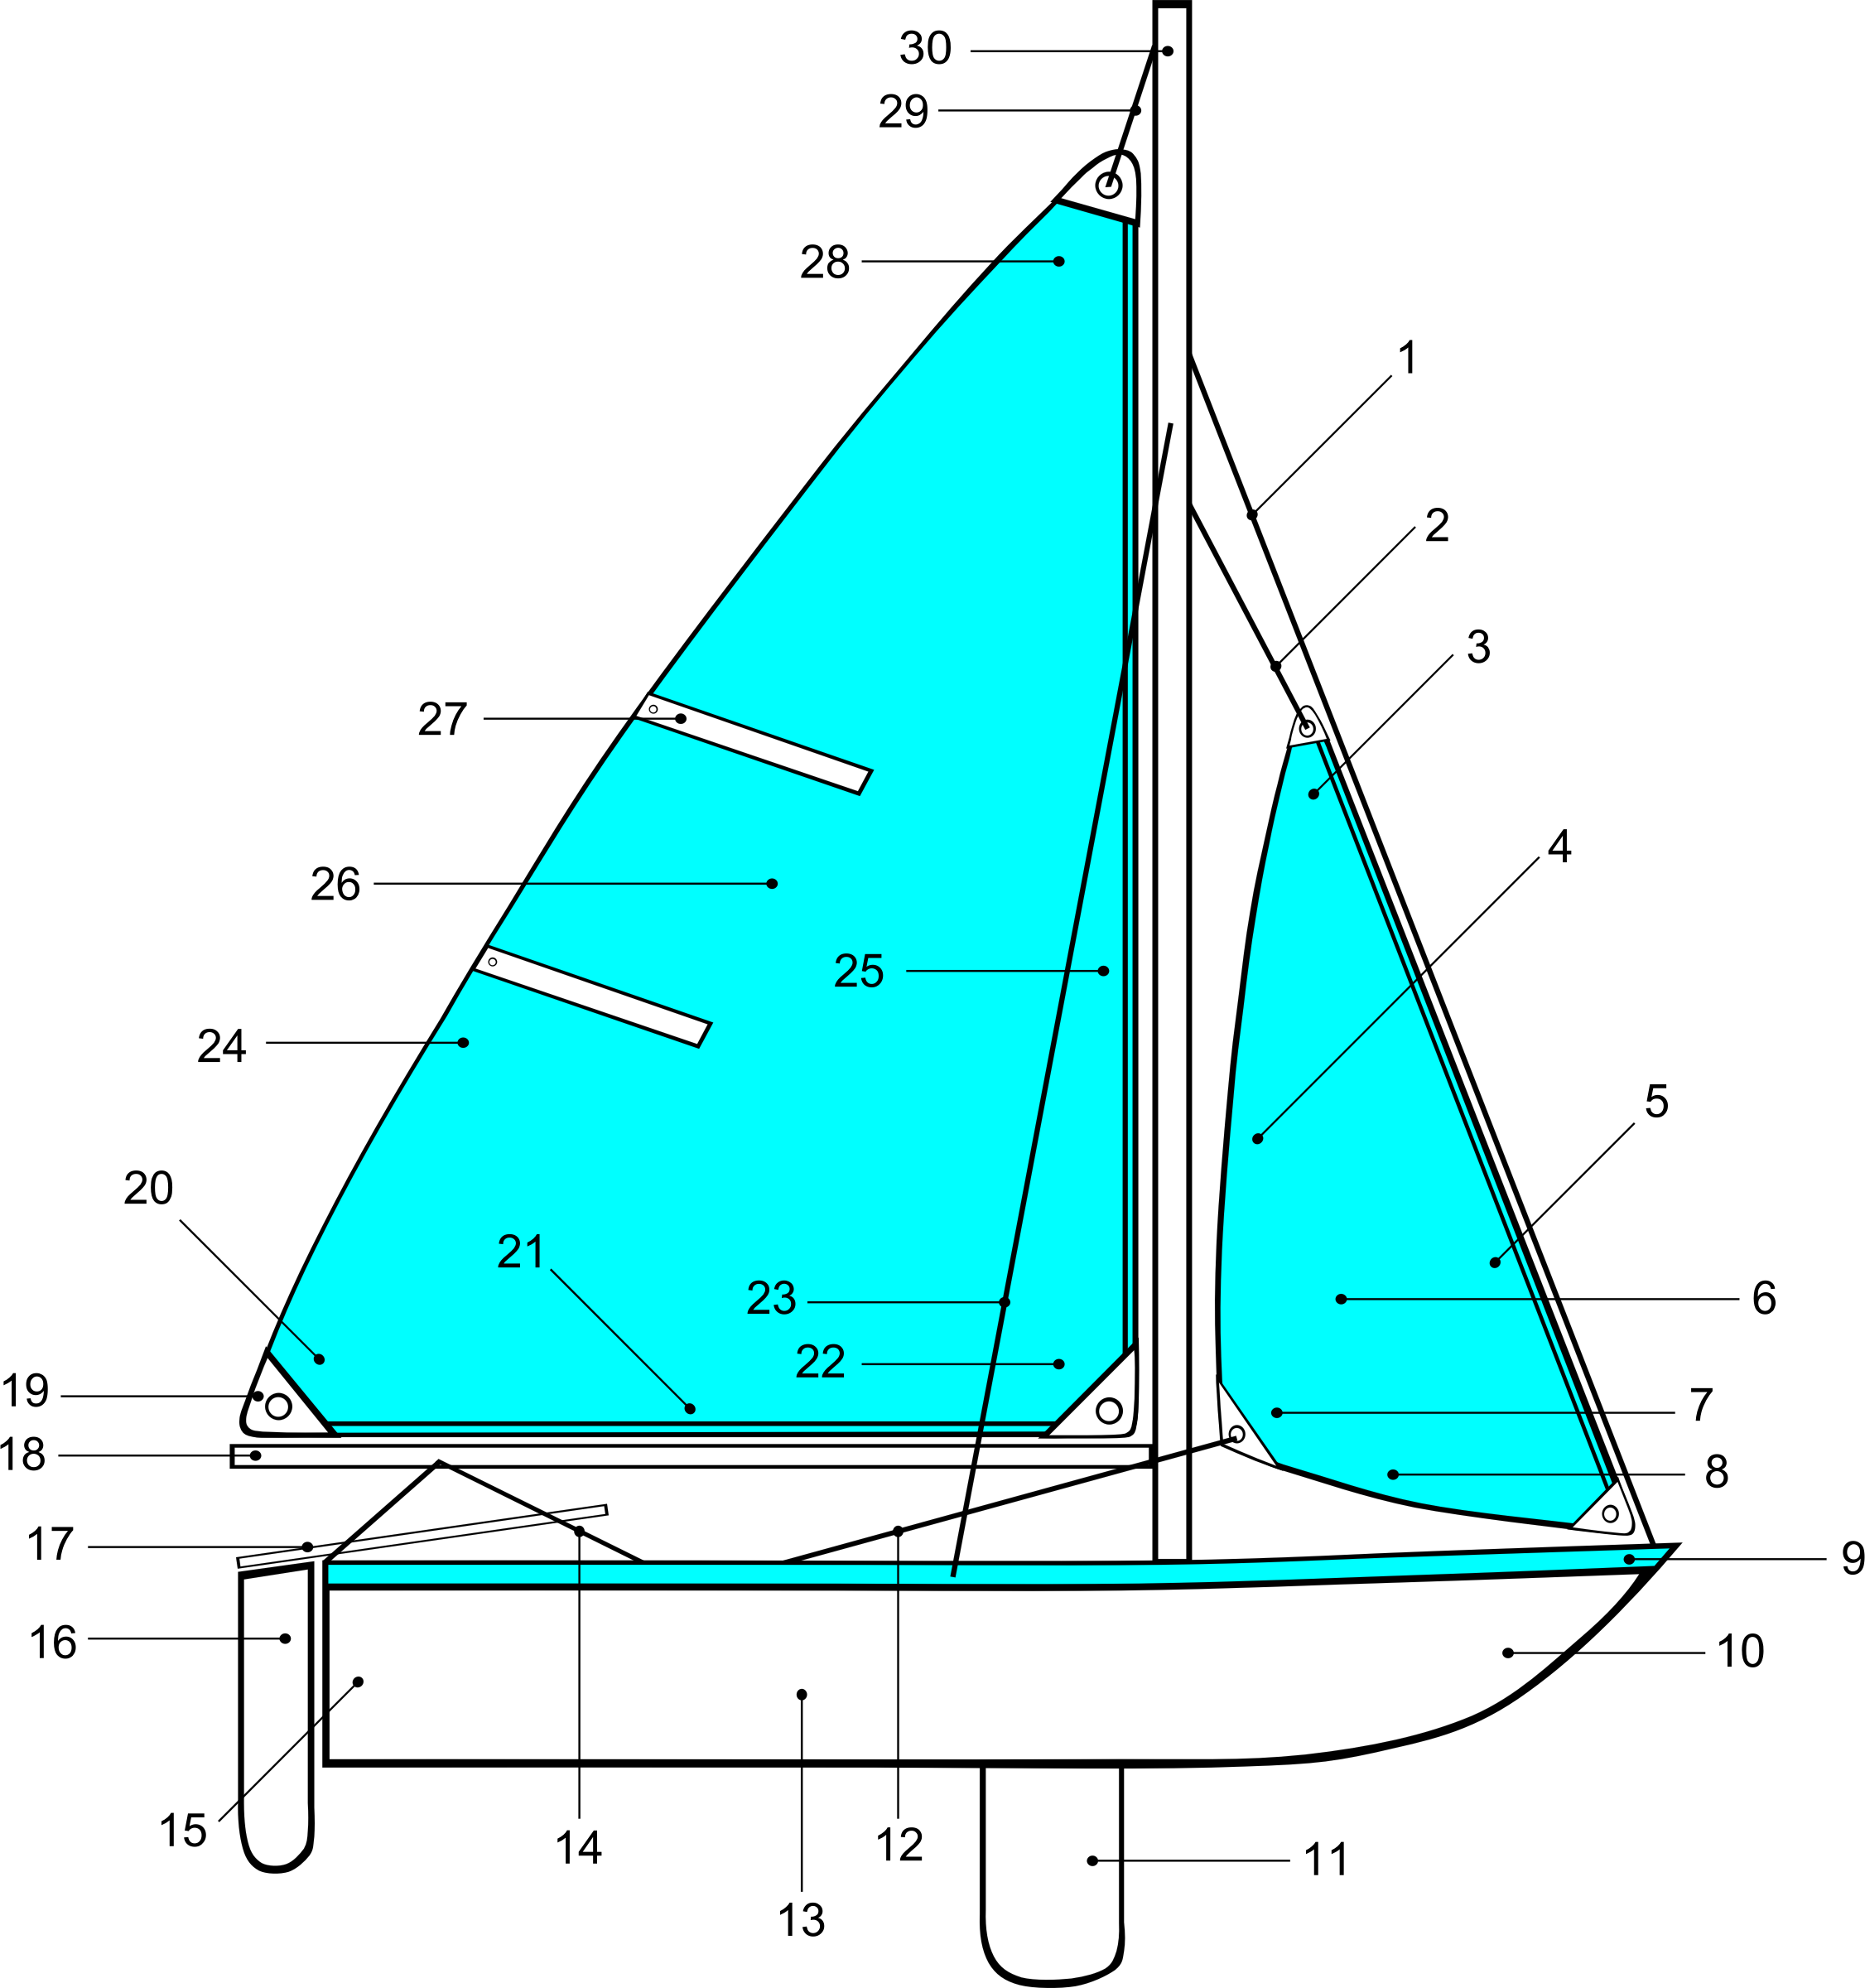 vector freeuse download Sailing parts of illustration. Yacht clipart big boat